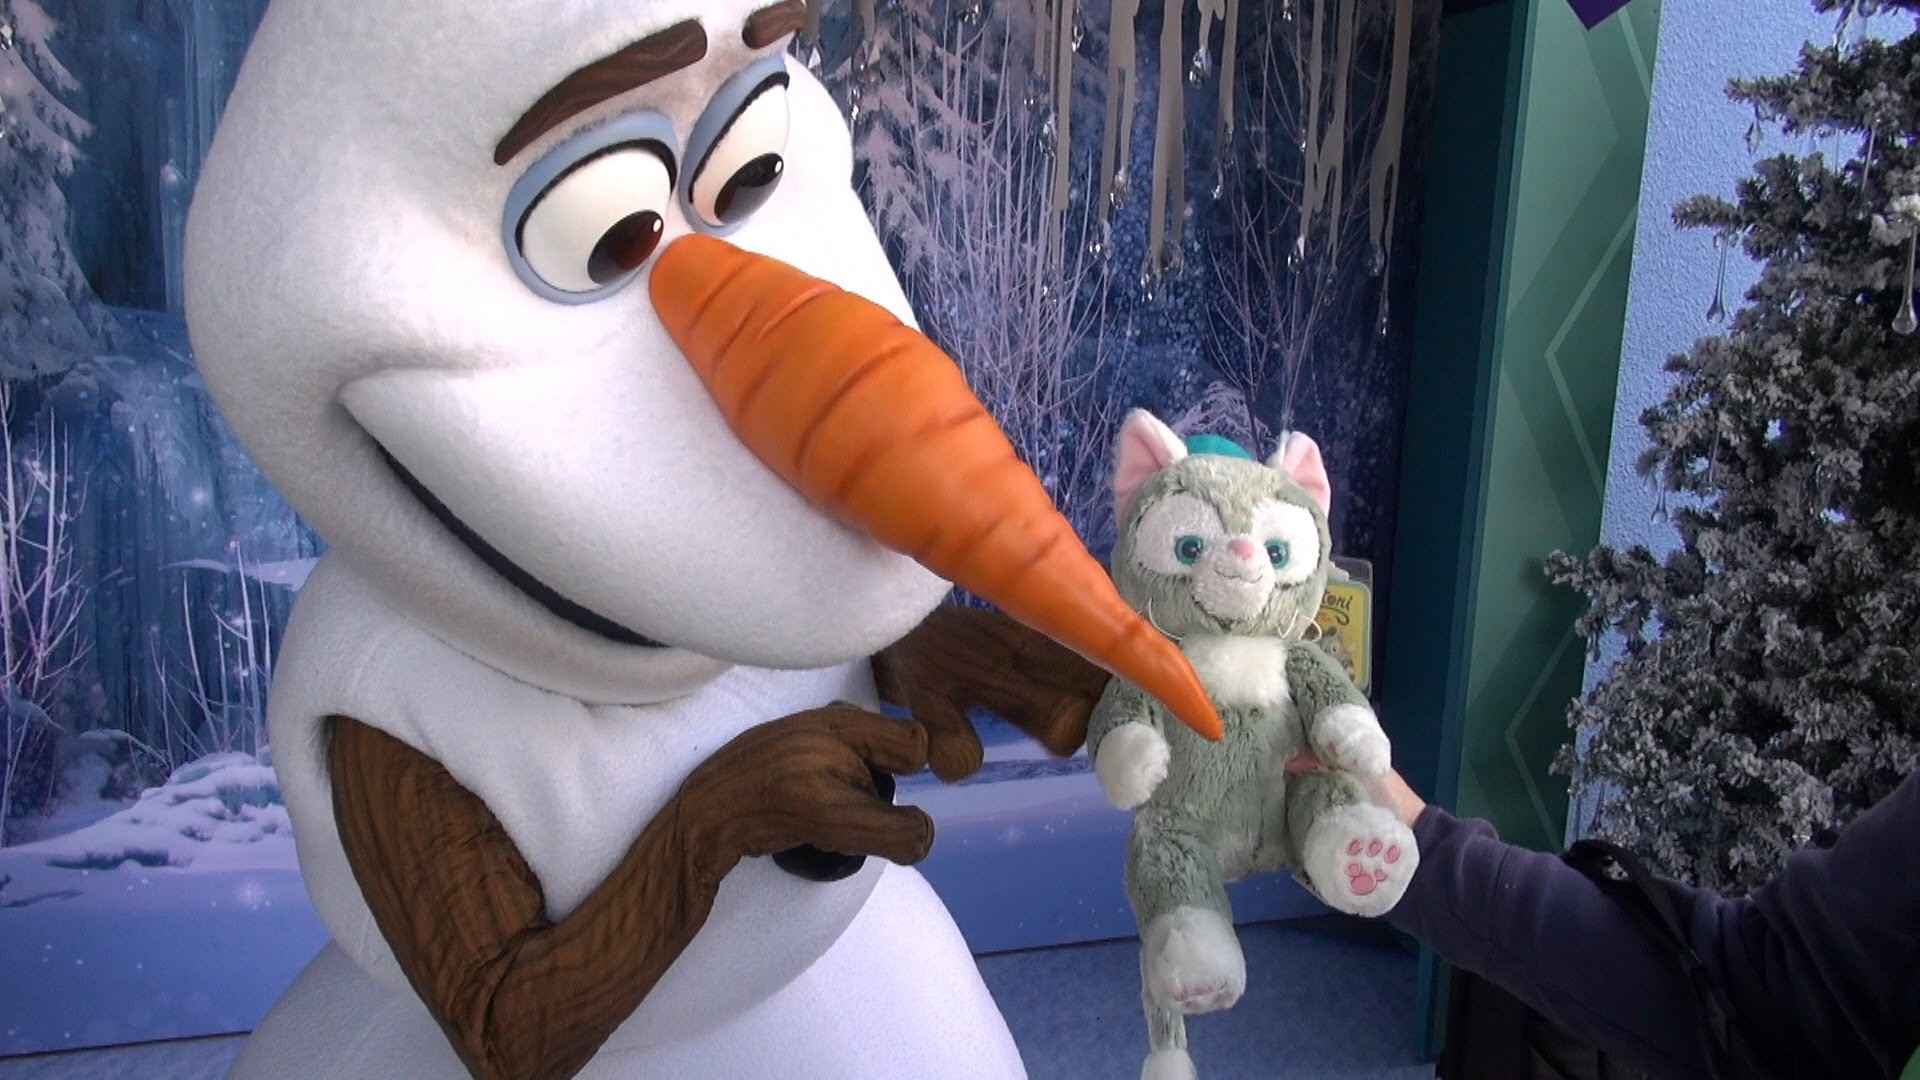 1920x1080 Olaf Meets Gelatoni for the First Time, Gives Warm Hug, Disney California  Adventure, Disneyland 60th - YouTube